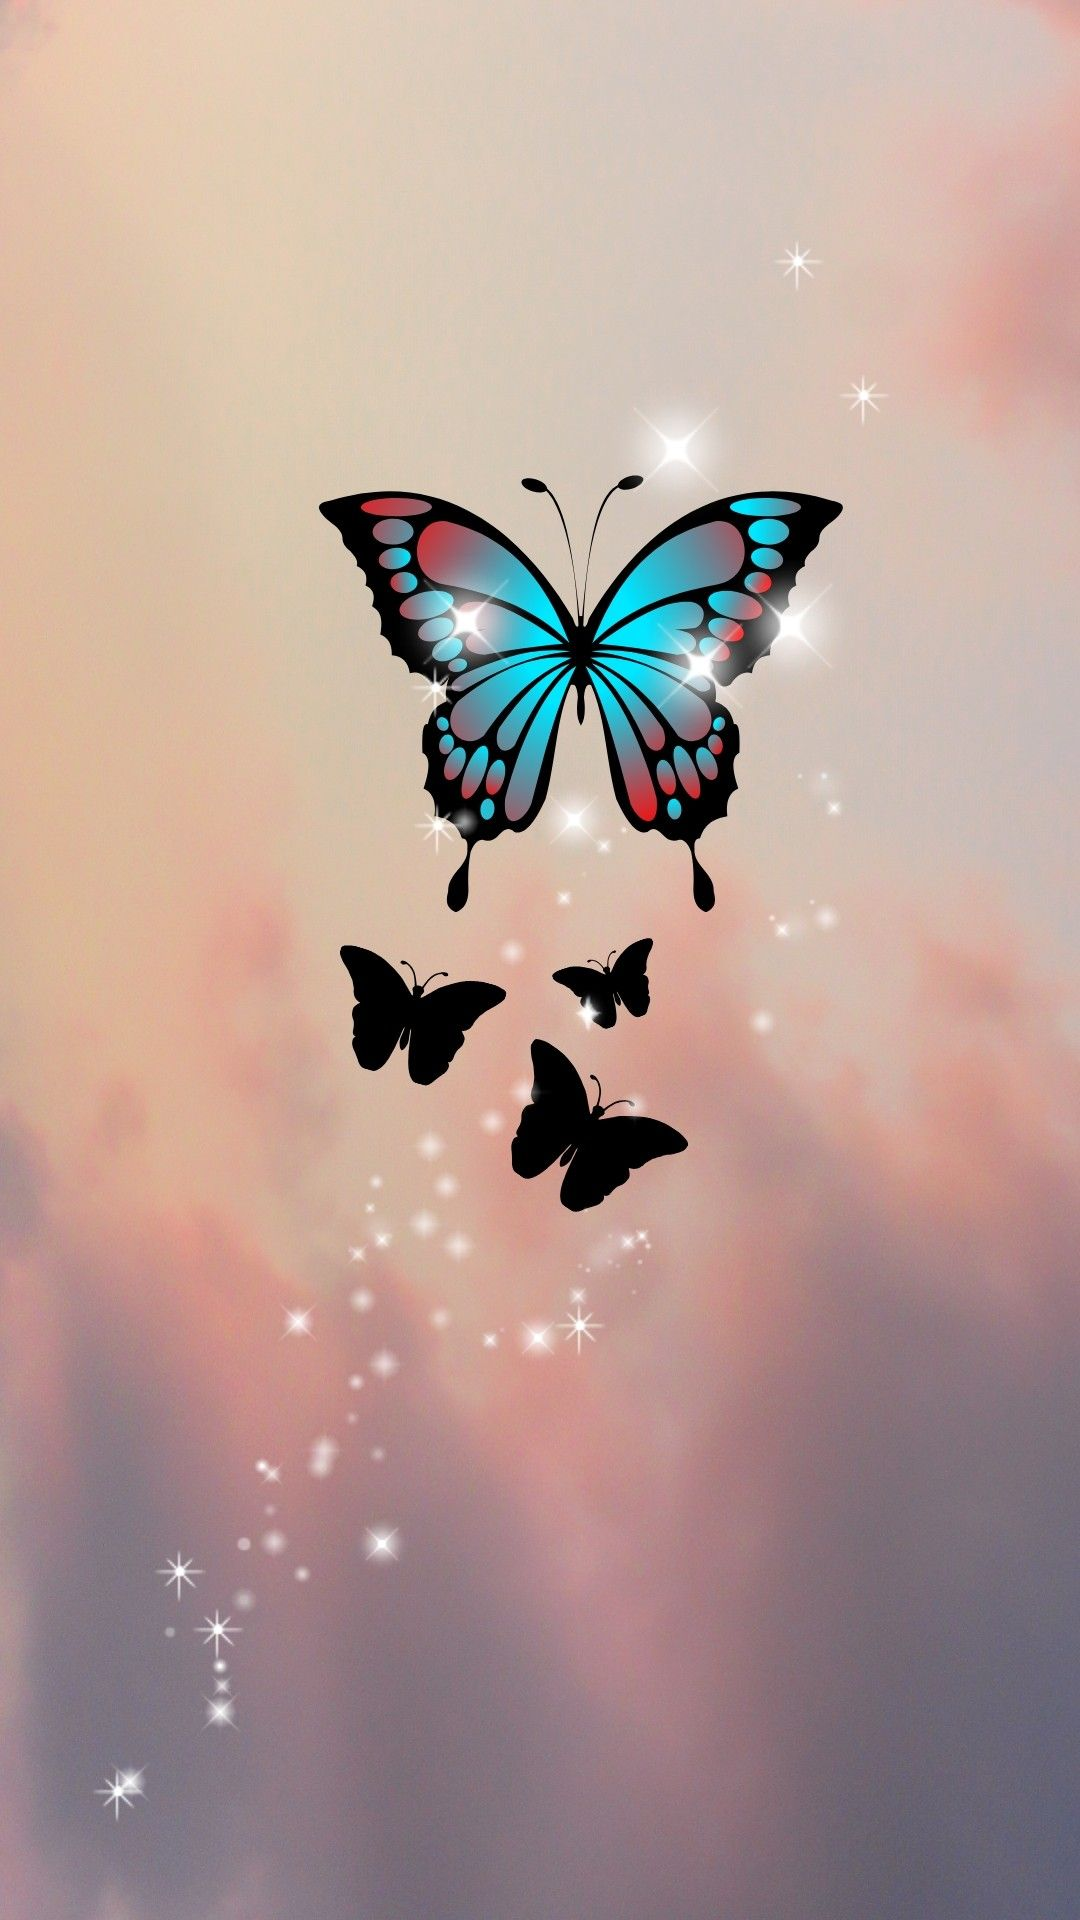 Sparkly Butterflies In The Sky In 2020 Sky Design Cute Backgrounds Cute Butterfly